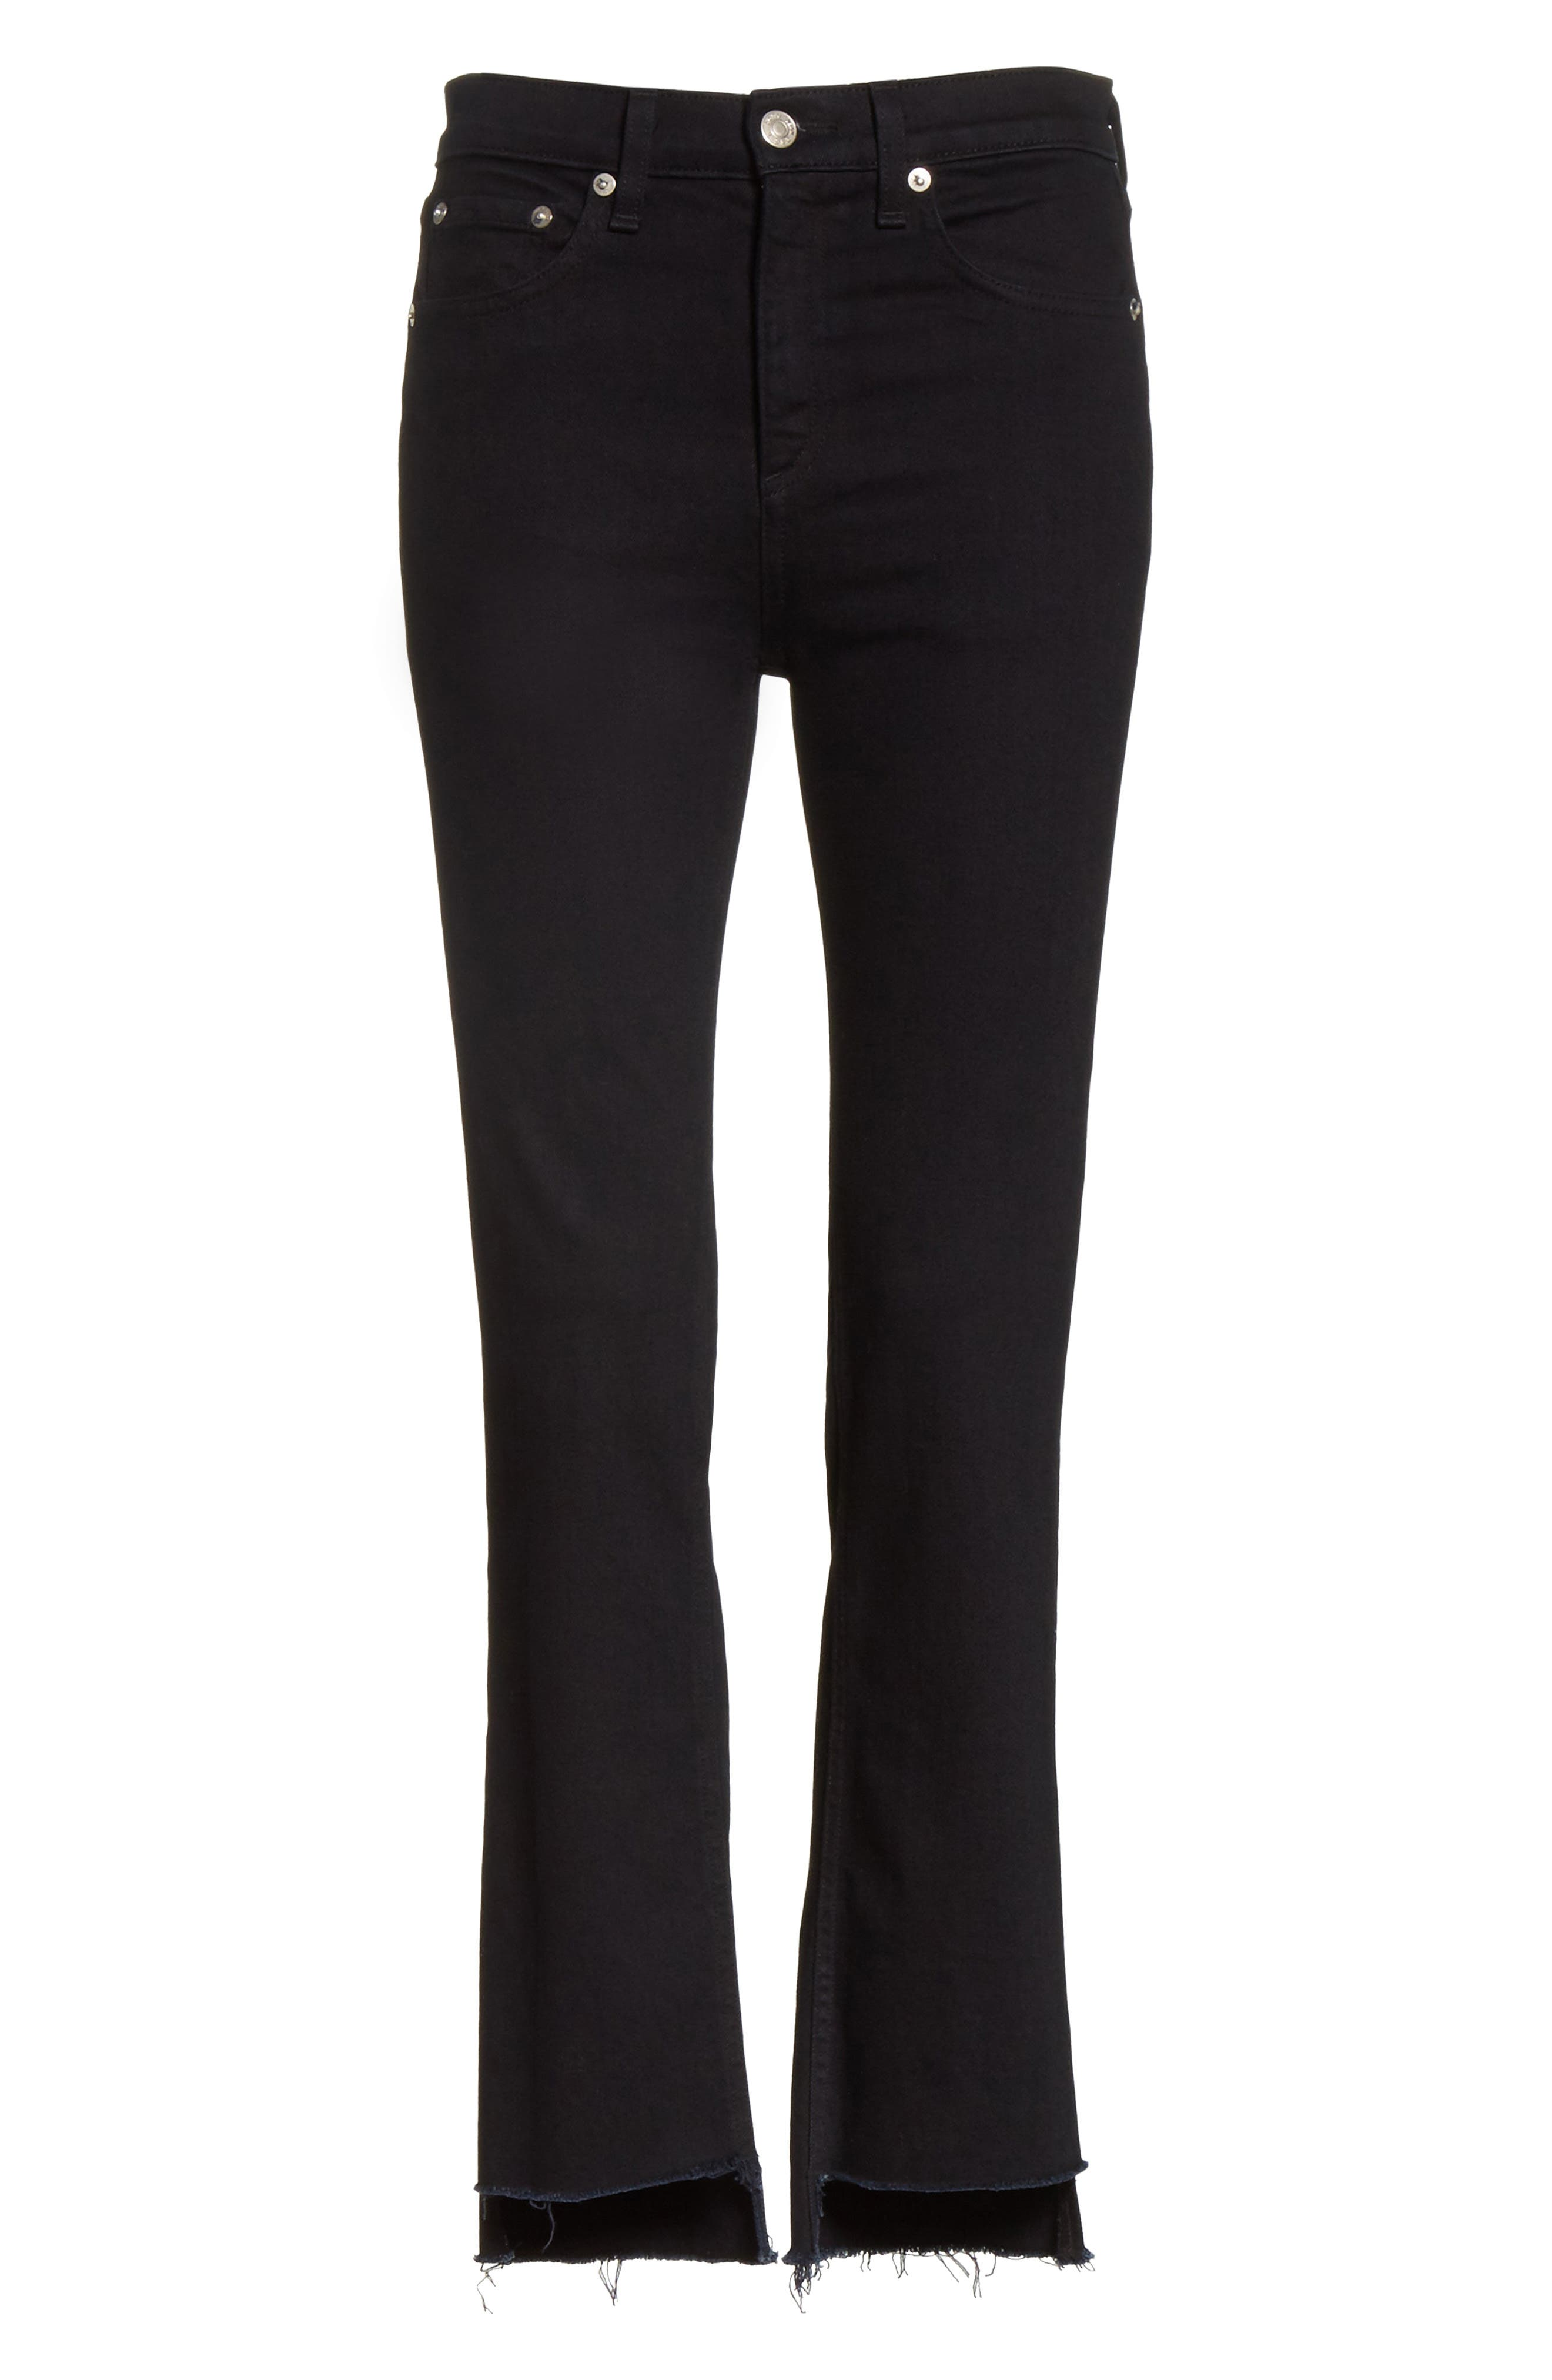 High Waist Stovepipe Jeans,                             Alternate thumbnail 6, color,                             001